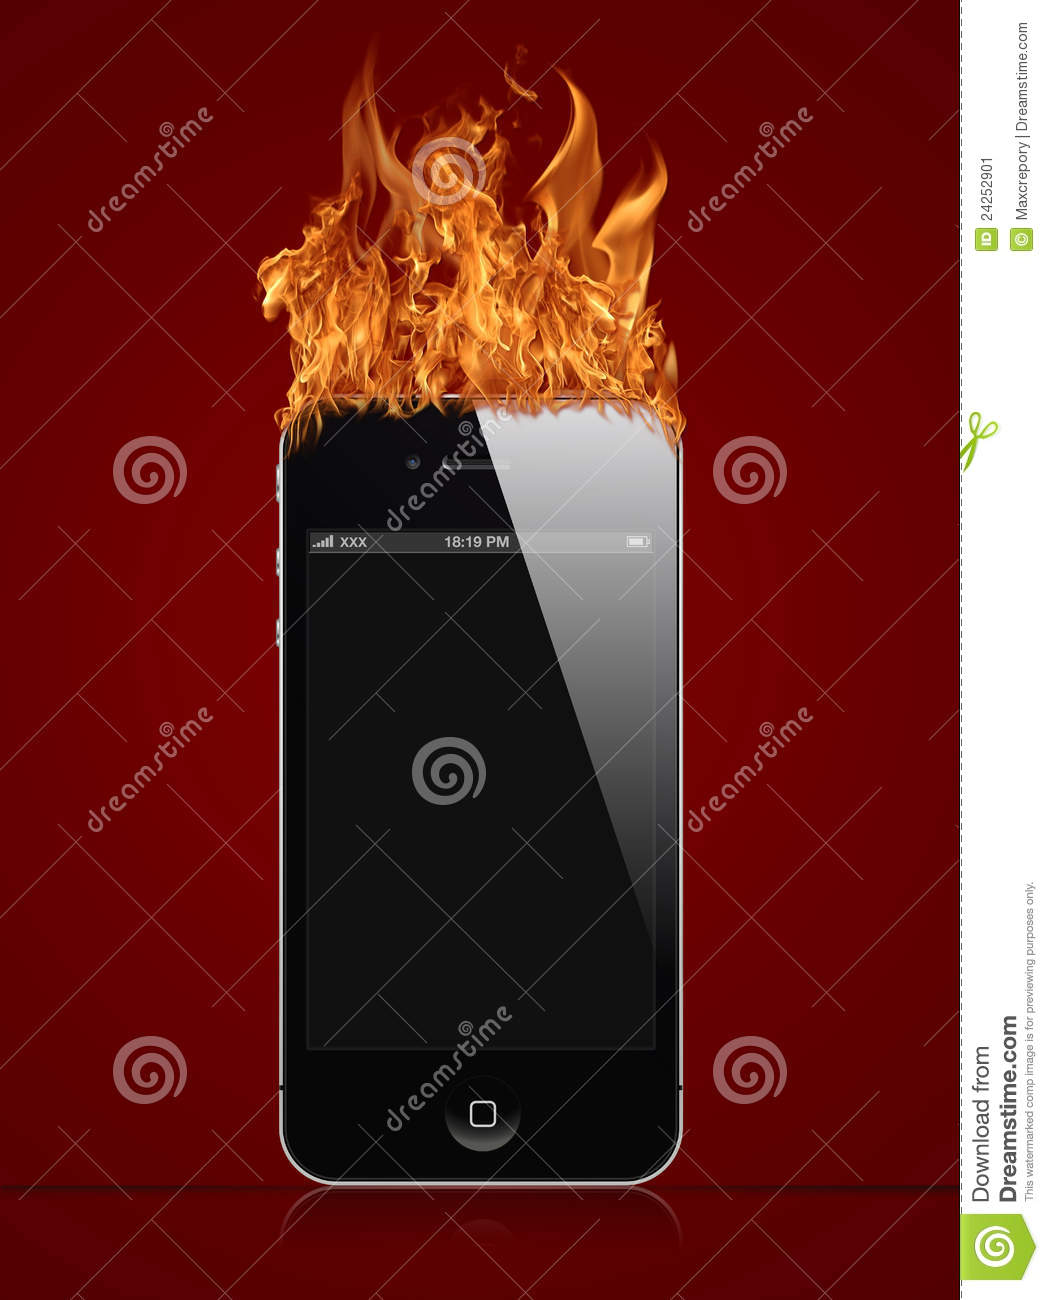 Iphone Feuer